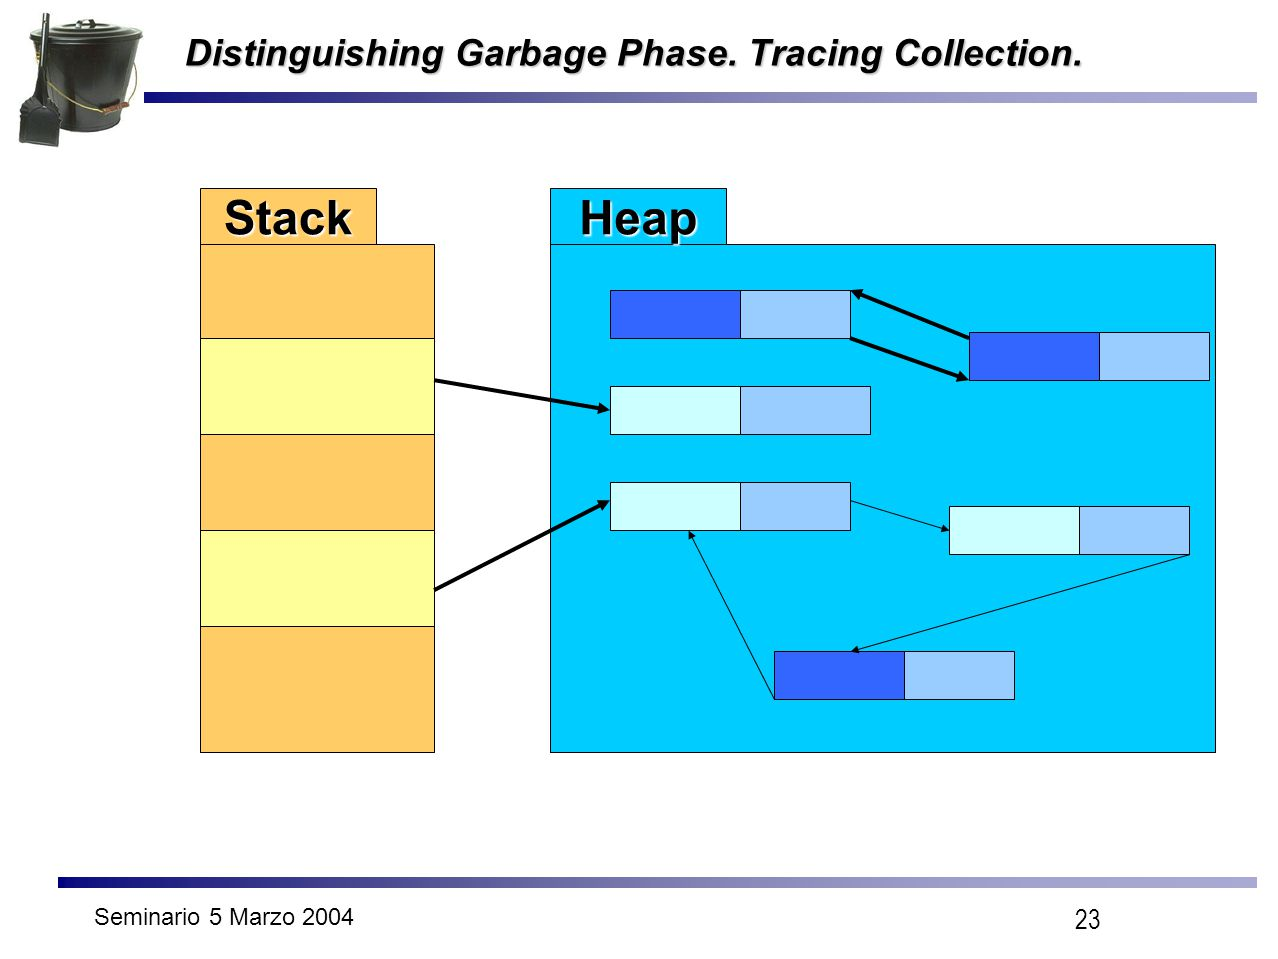 Seminario 5 Marzo 2004 23 Distinguishing Garbage Phase. Tracing Collection. StackHeap